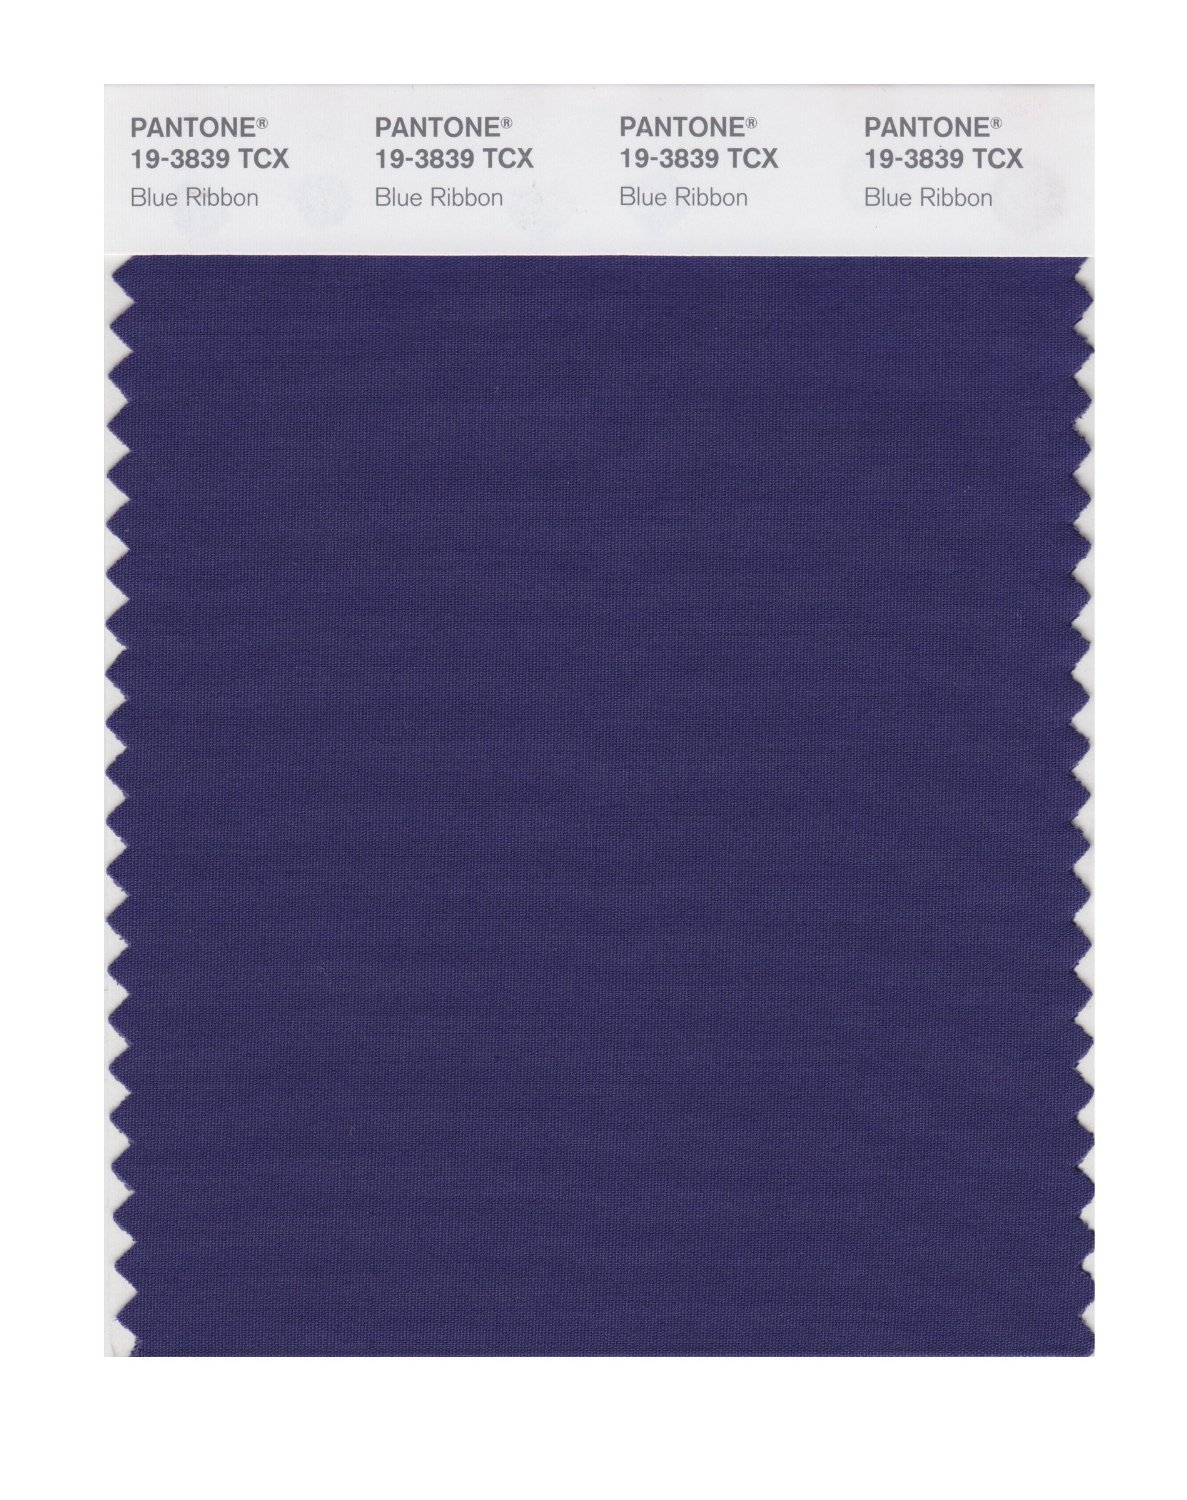 Pantone Smart Swatch 19-3839 Blue Ribbon